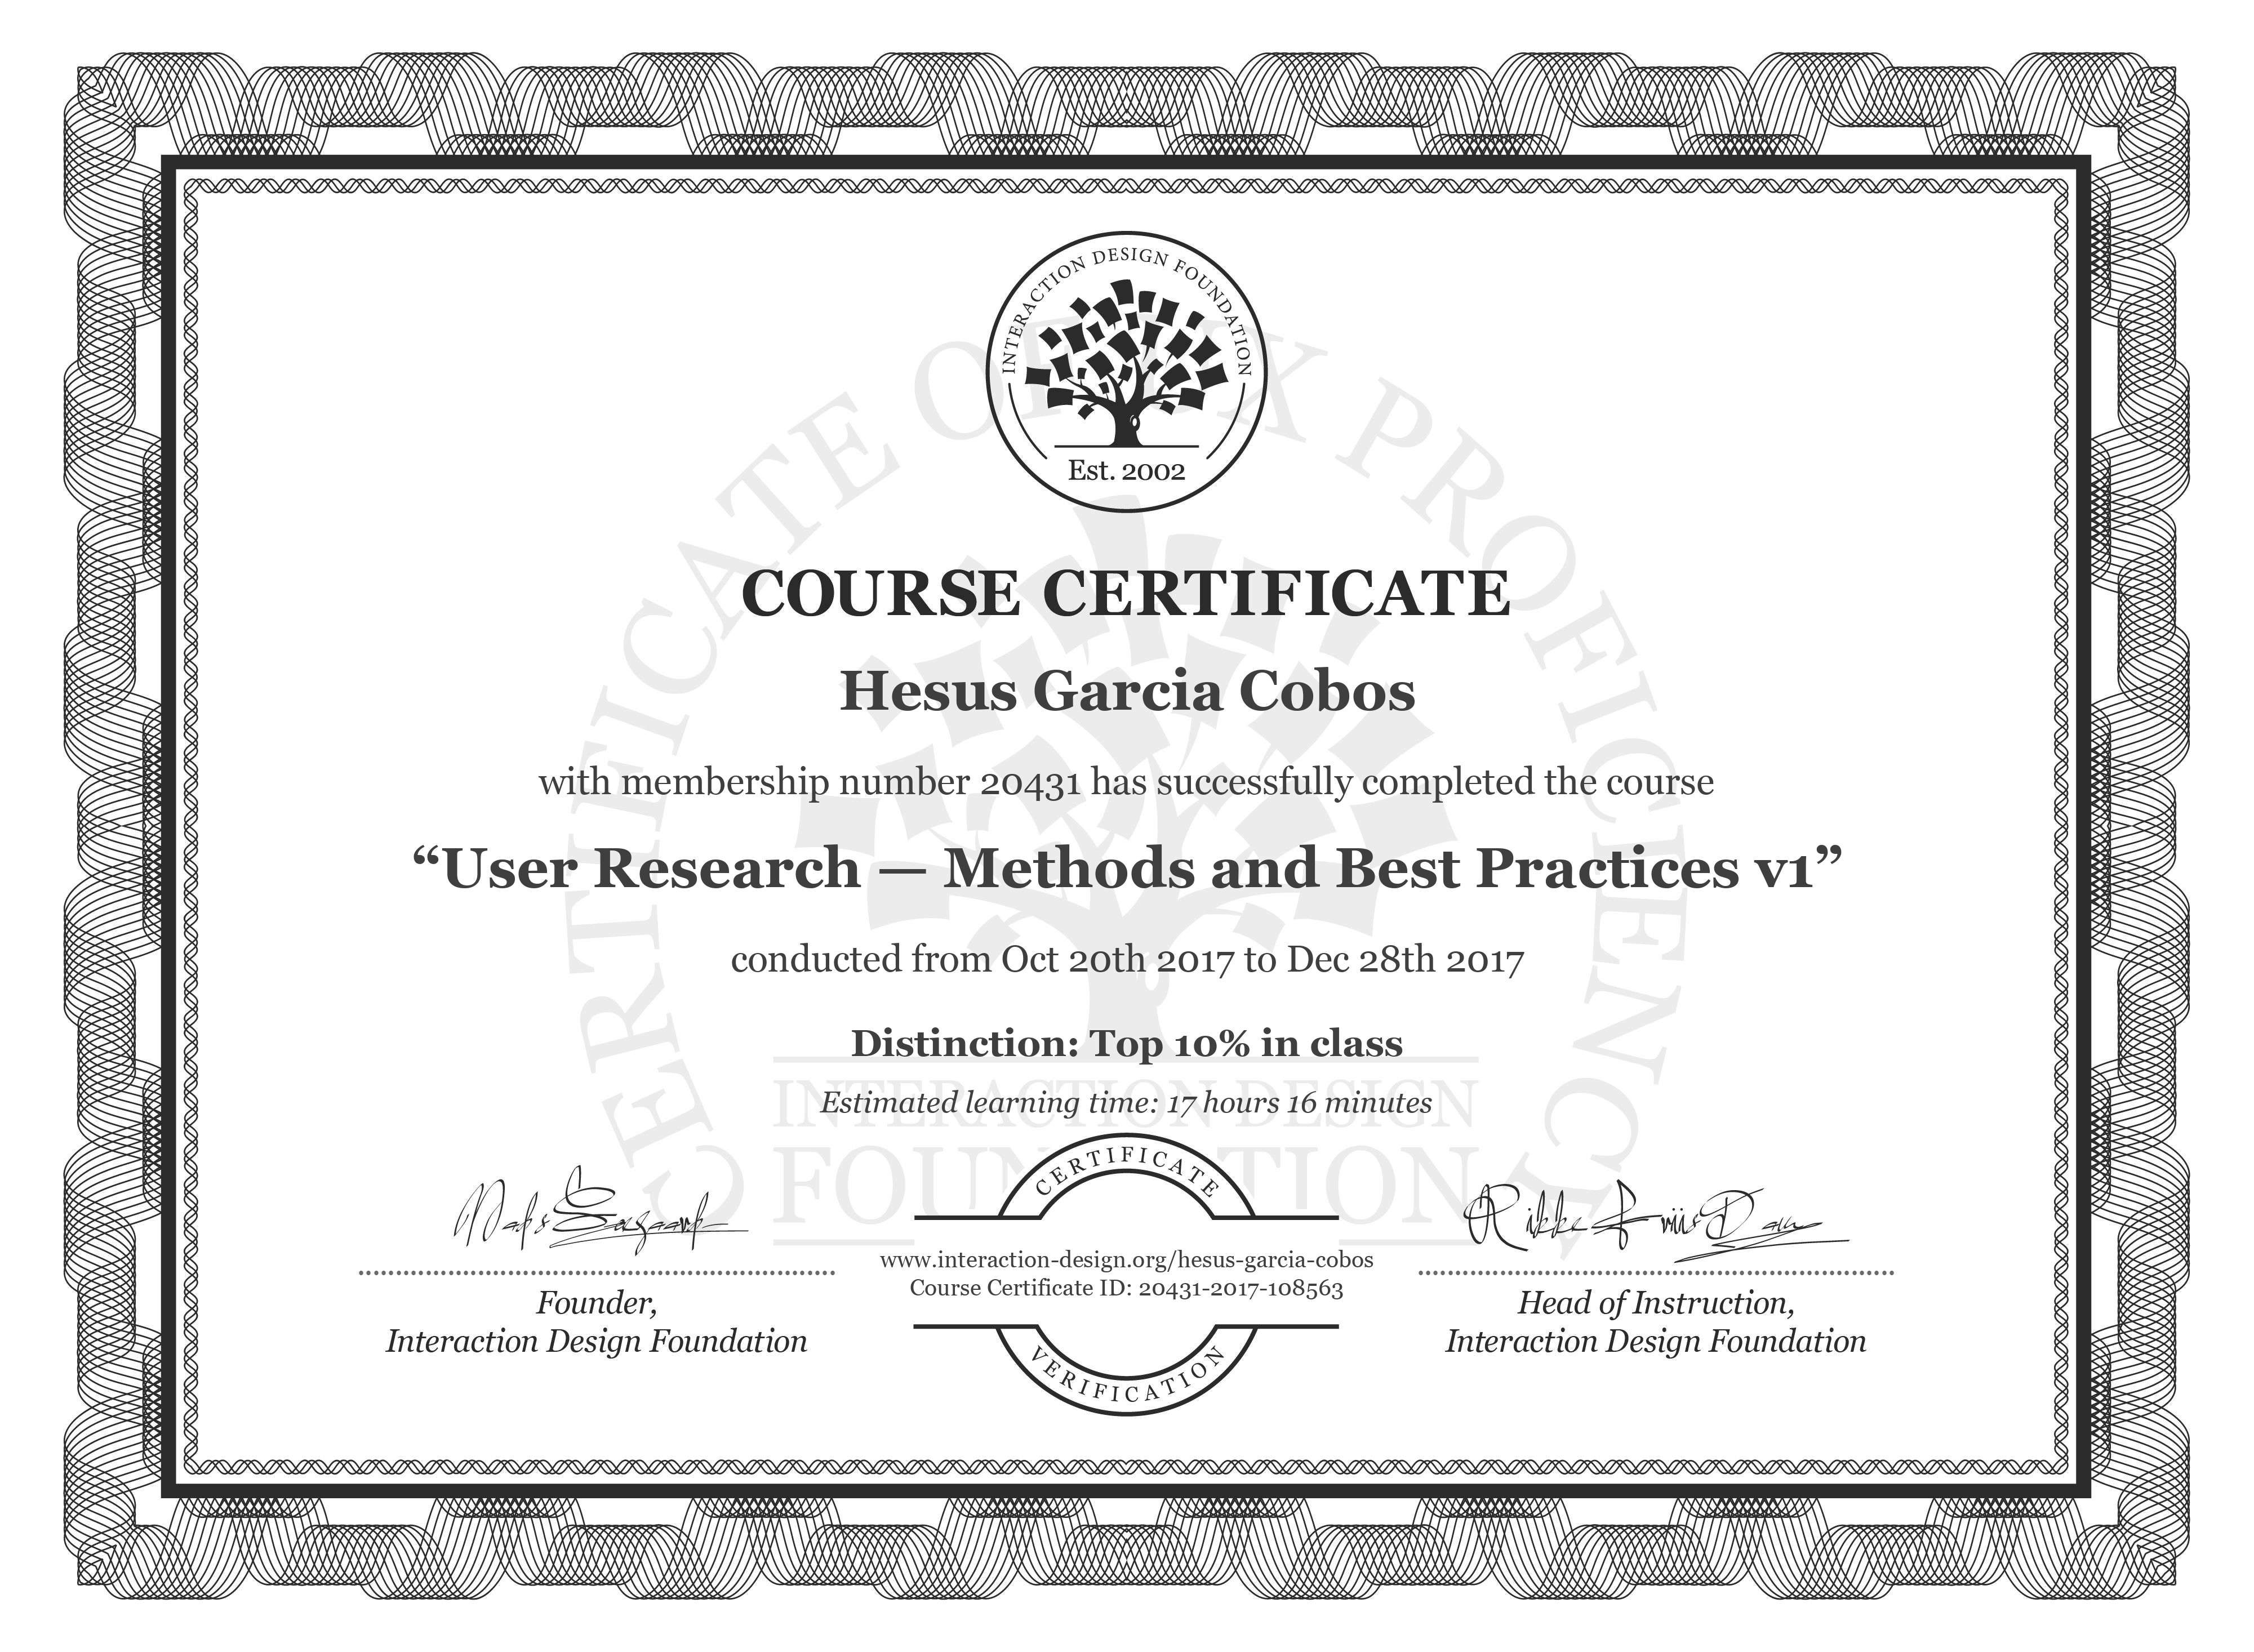 Hesus Garcia Cobos: Course Certificate - User Research — Methods and Best Practices